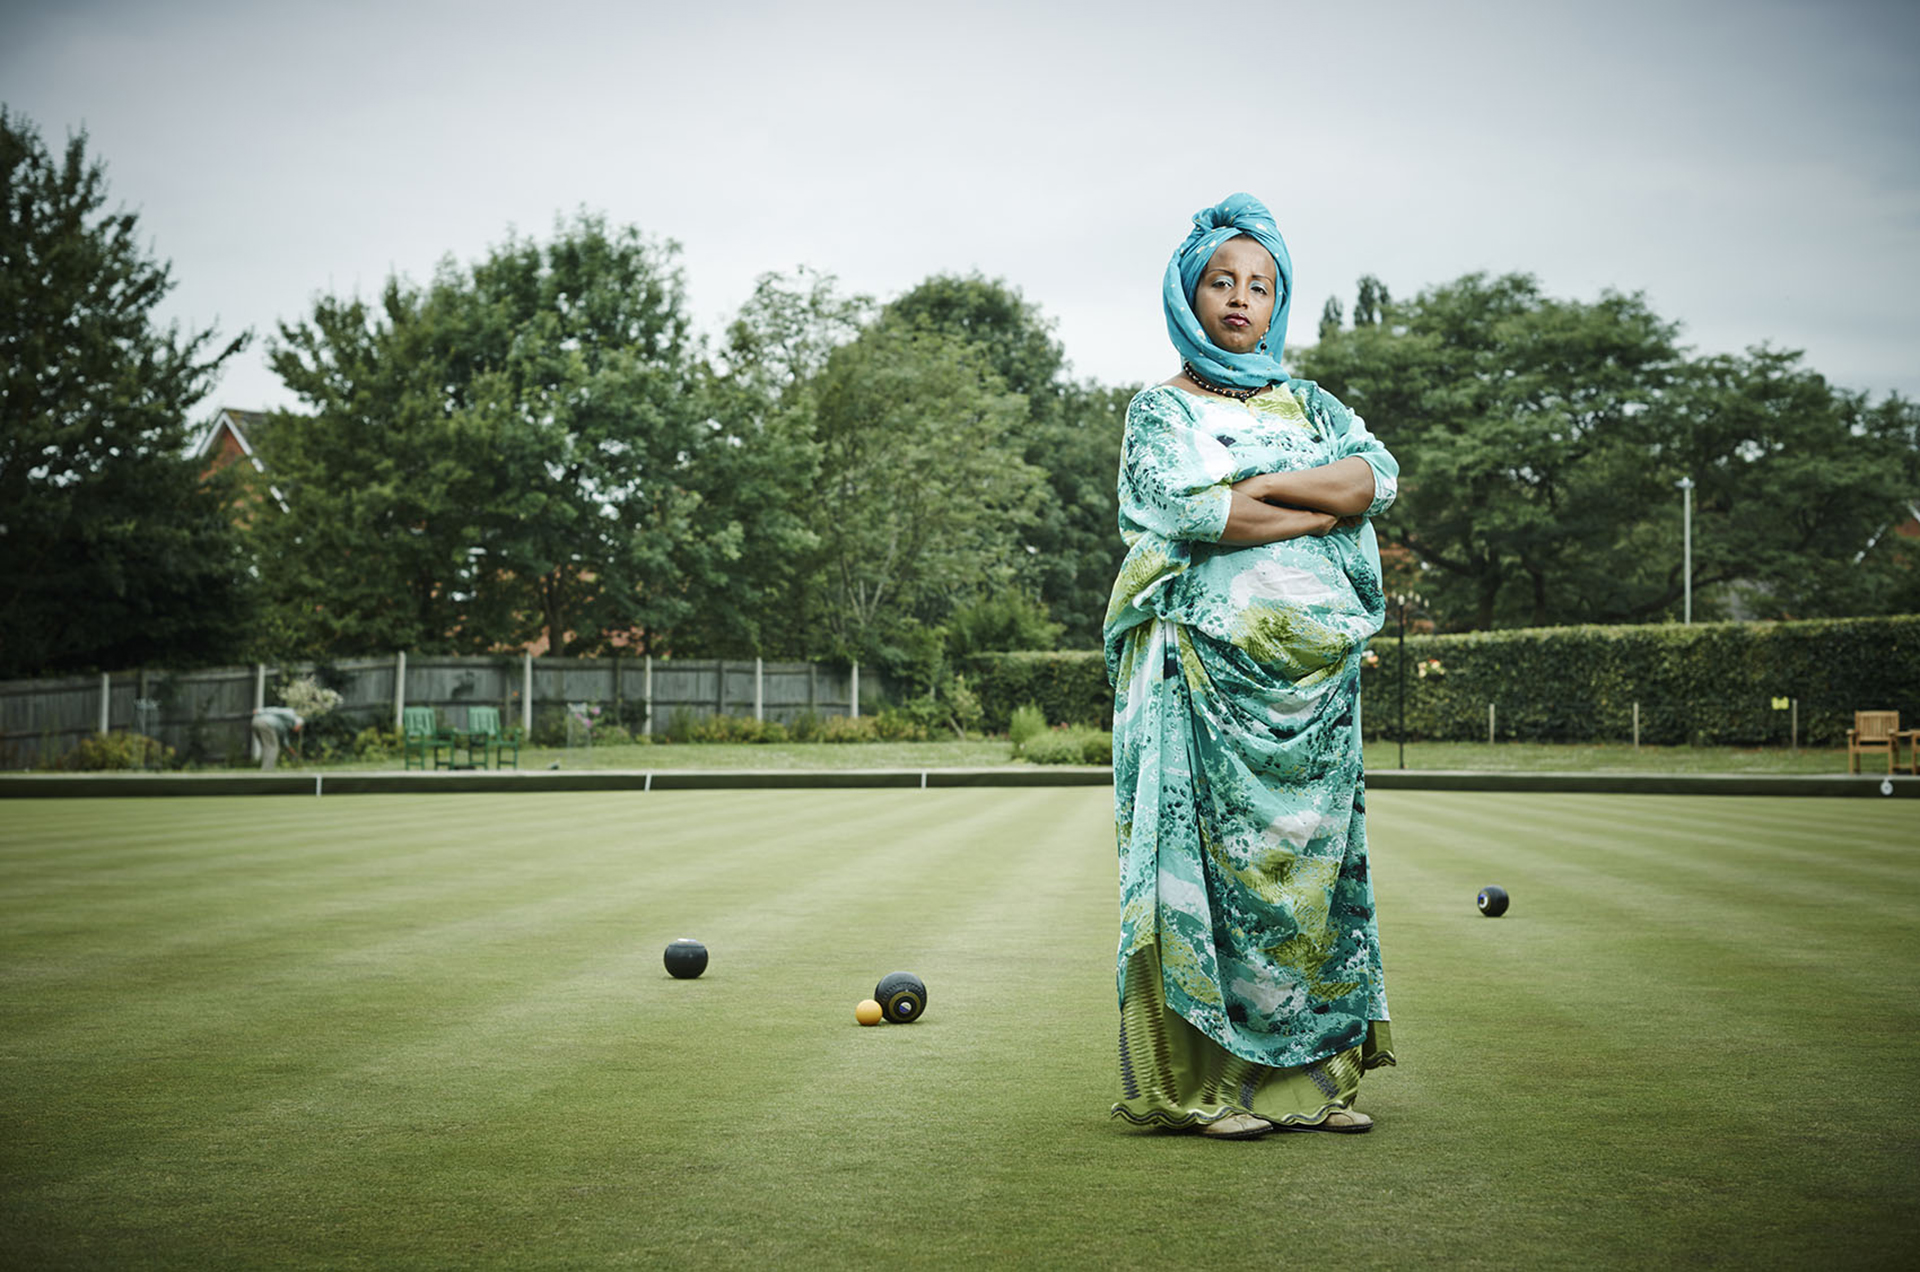 Sagal - Make Leicester British Photo by Phil Fisk for Channel 4